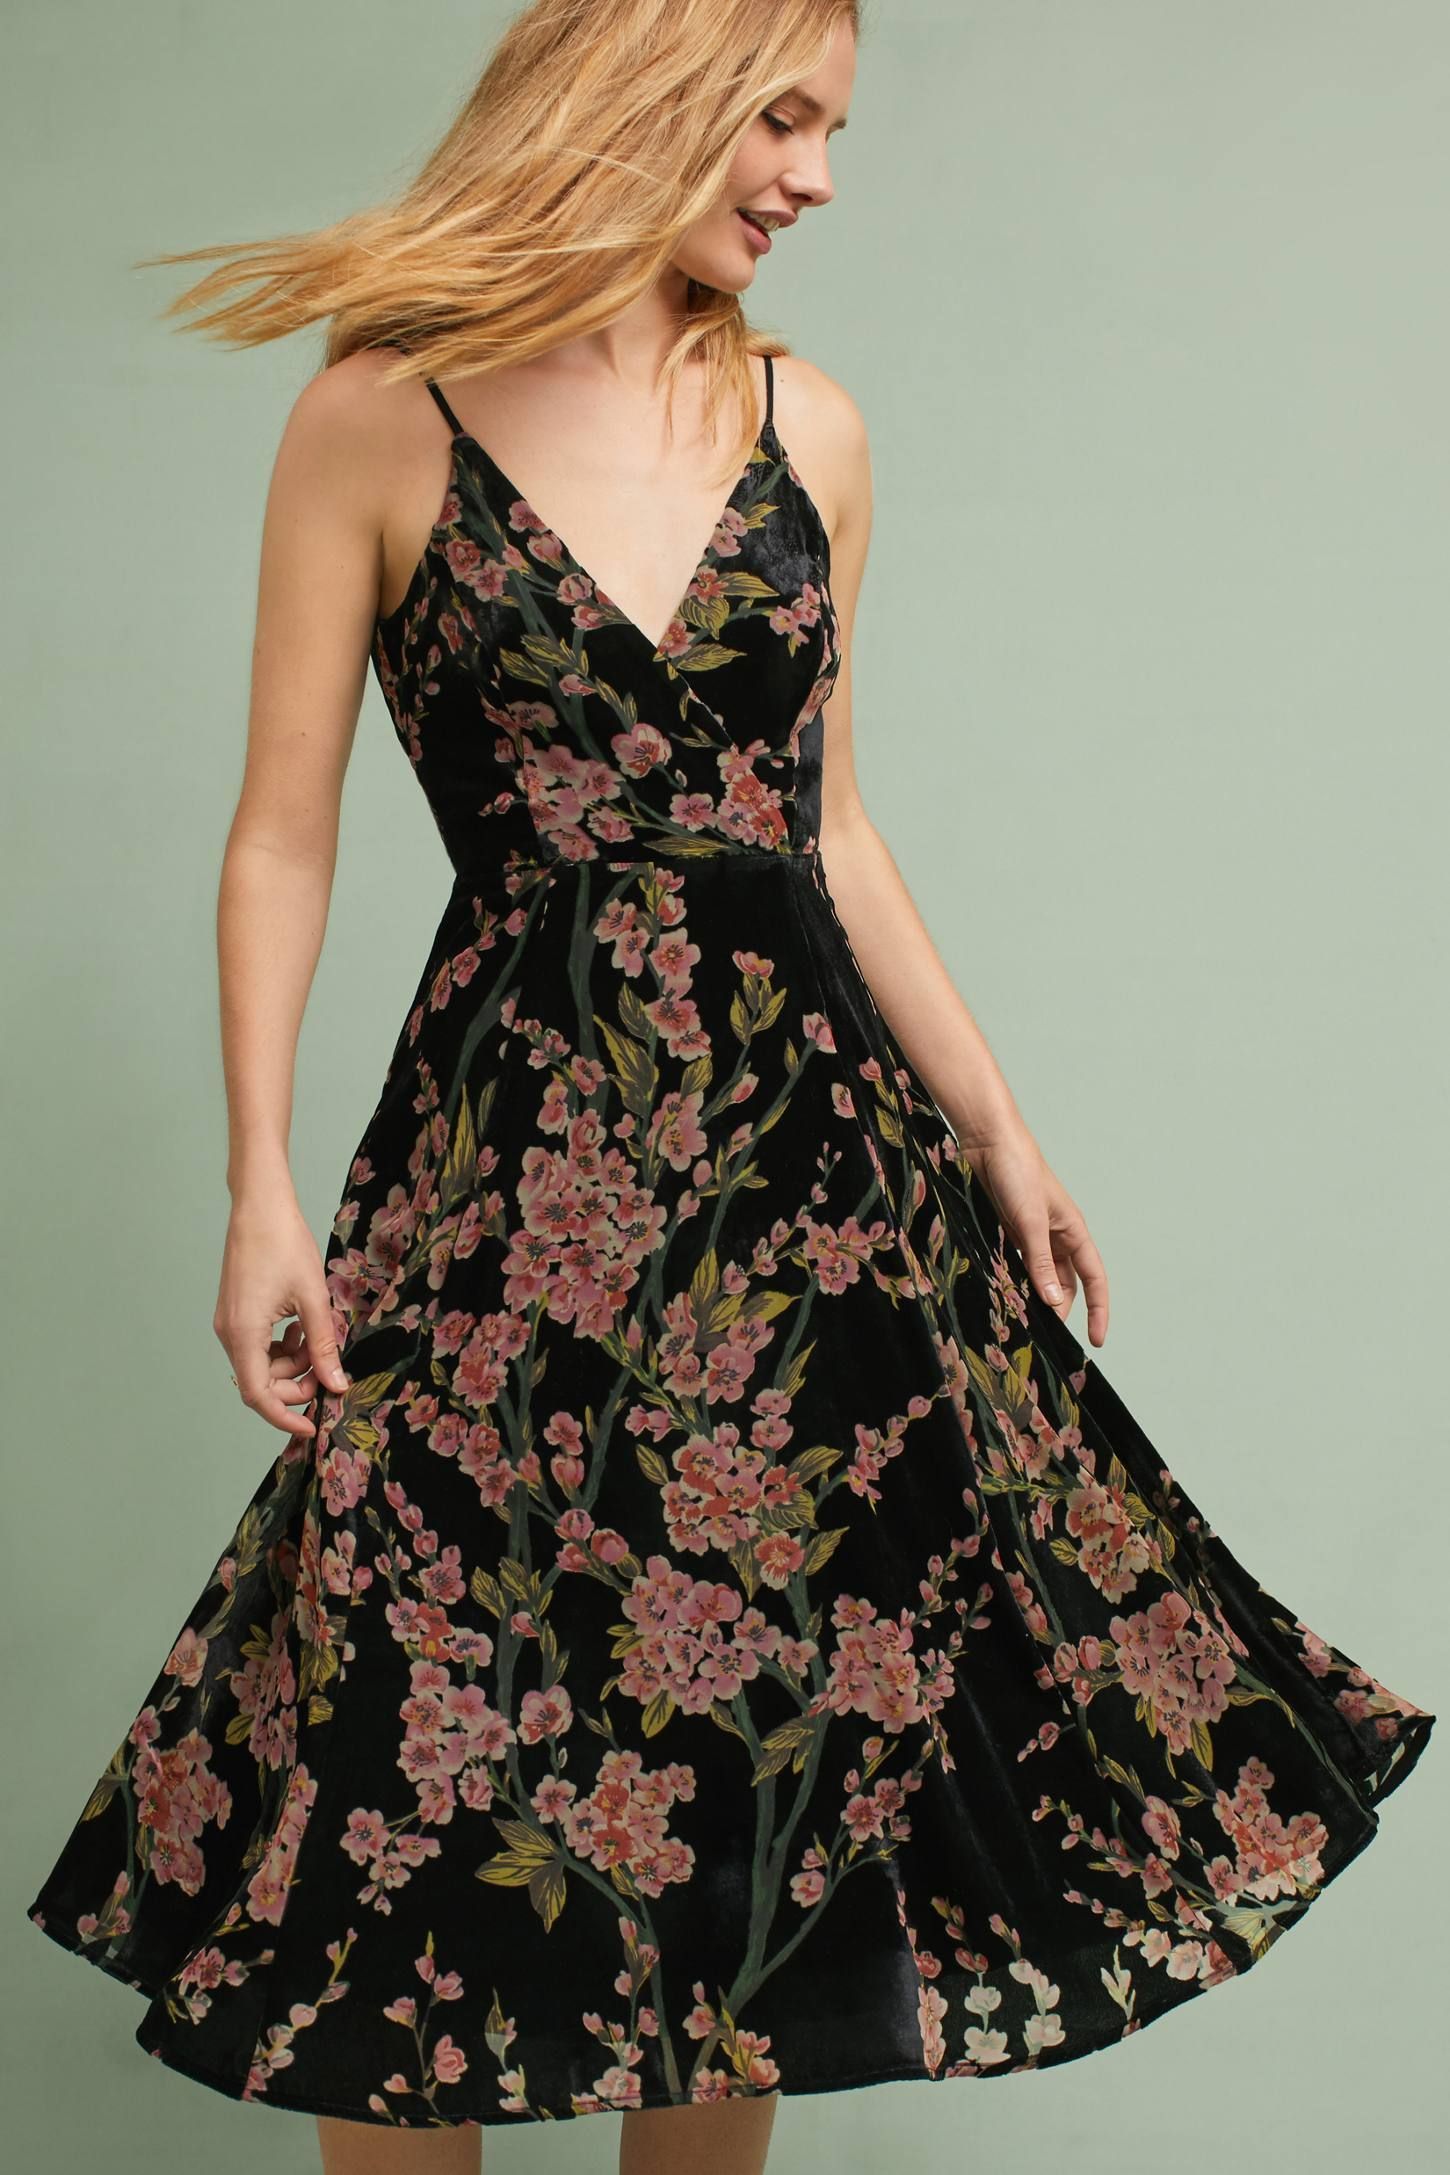 9a6c8bfa086 Shop the Floral Burnout Slip Dress and more Anthropologie at Anthropologie  today. Read customer reviews